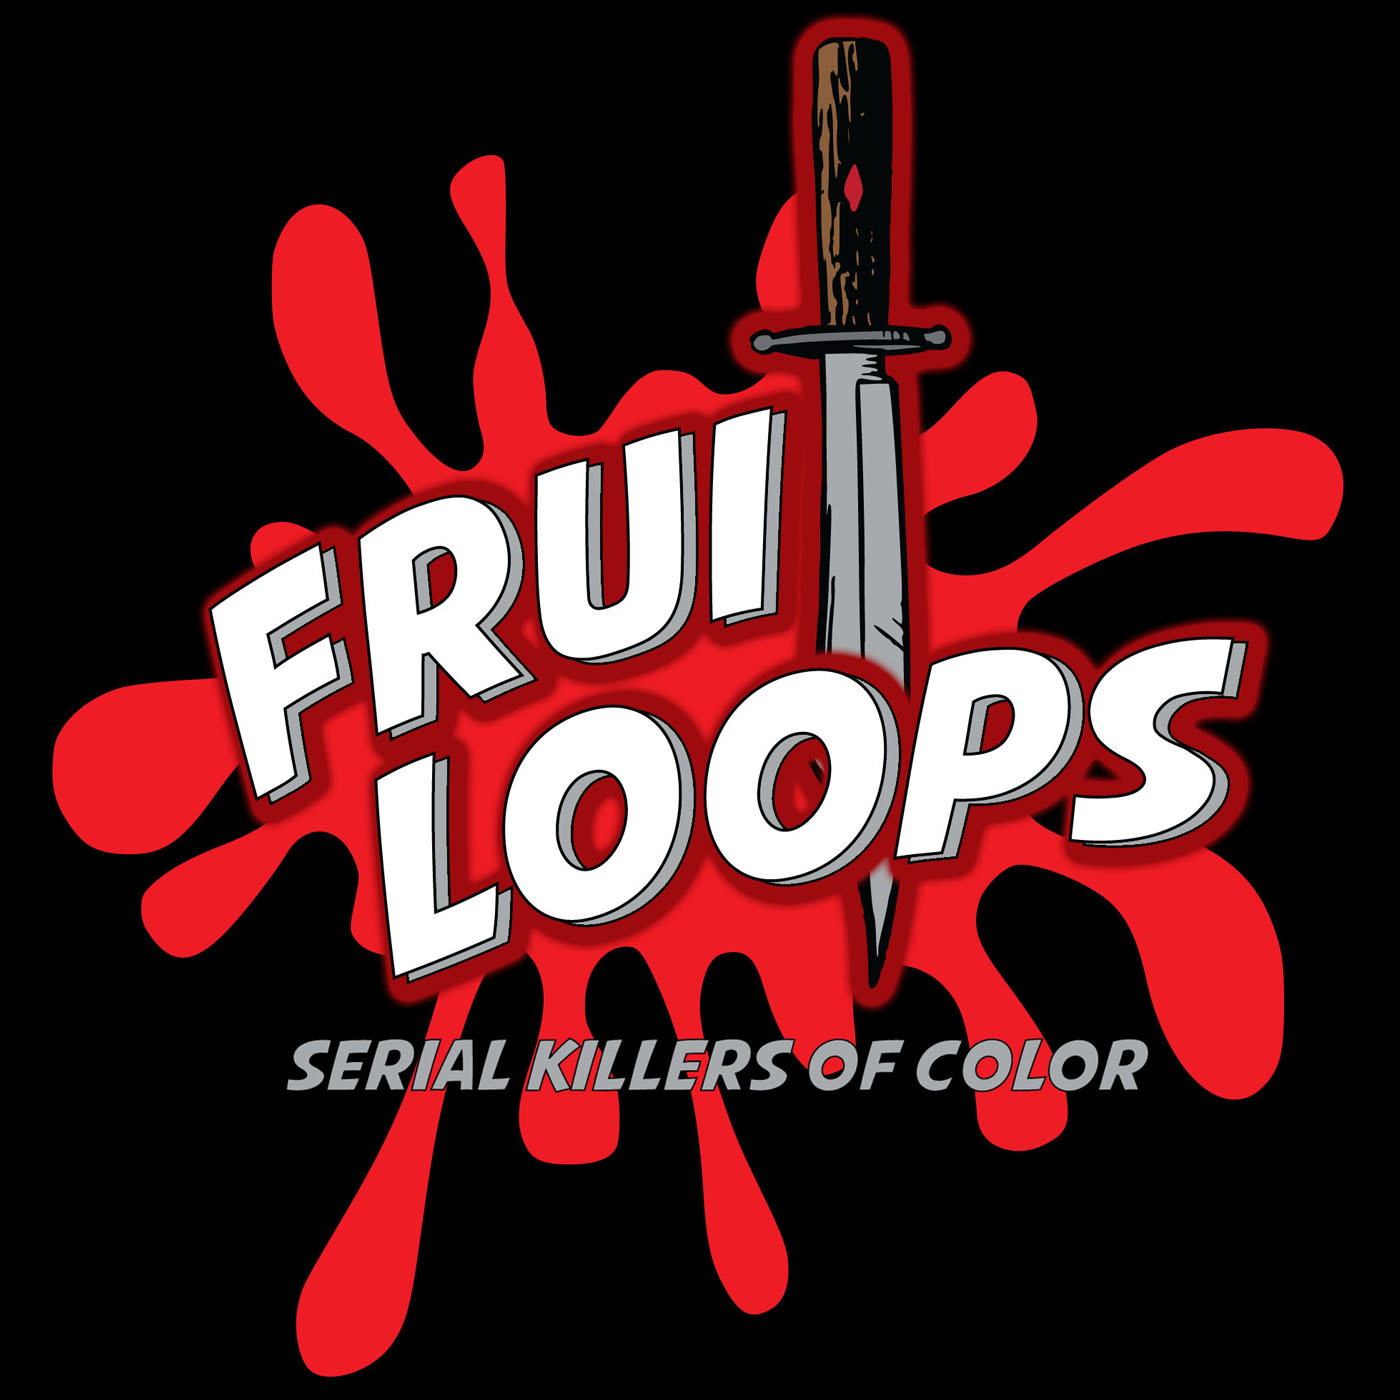 Fruitloops: Serial Killers of Color